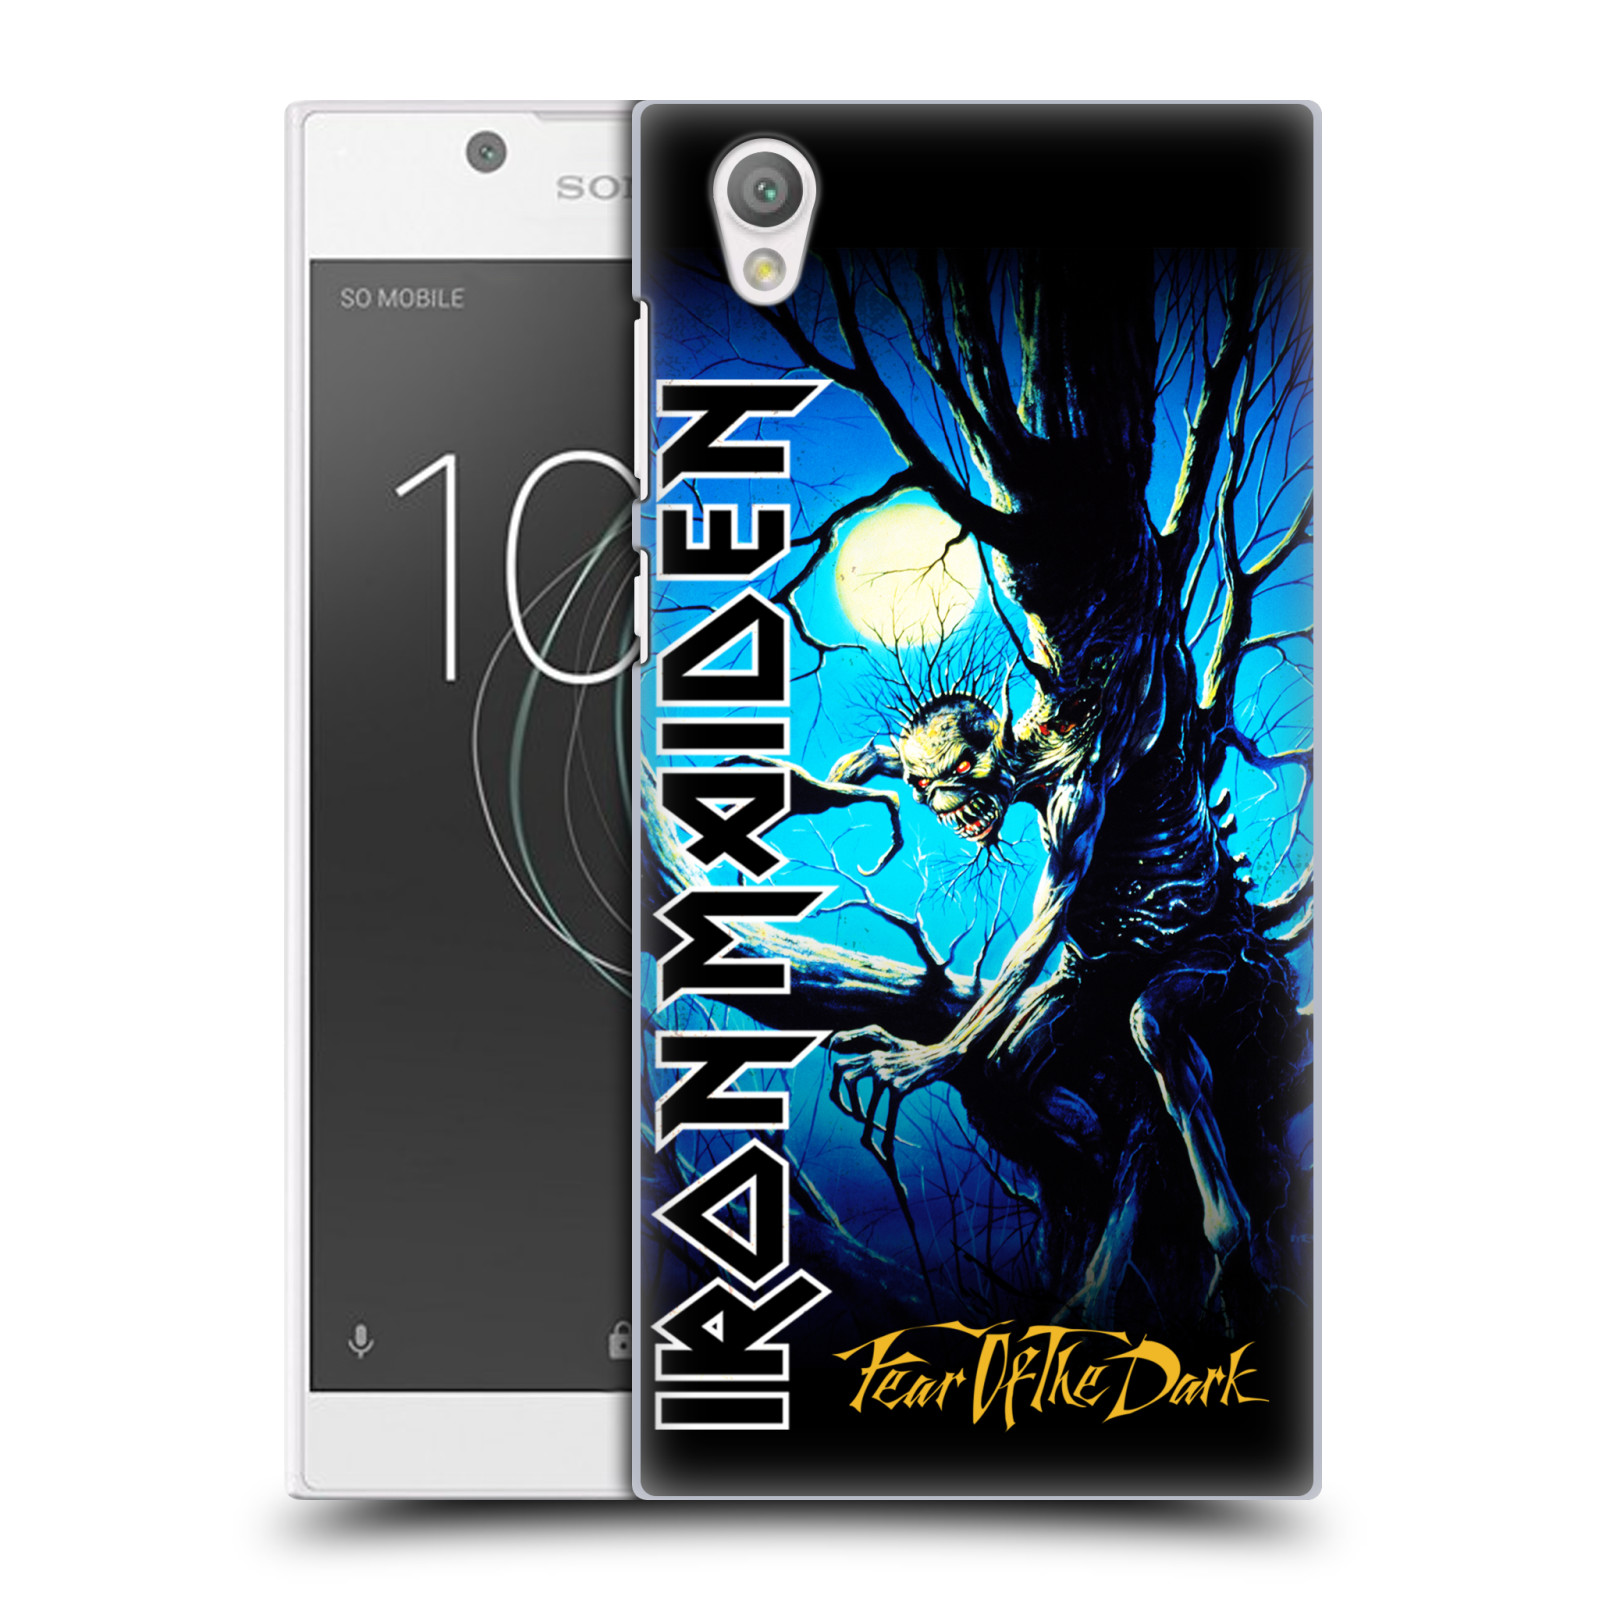 Plastové pouzdro na mobil Sony Xperia L1 - Head Case - Iron Maiden - Fear Of The Dark